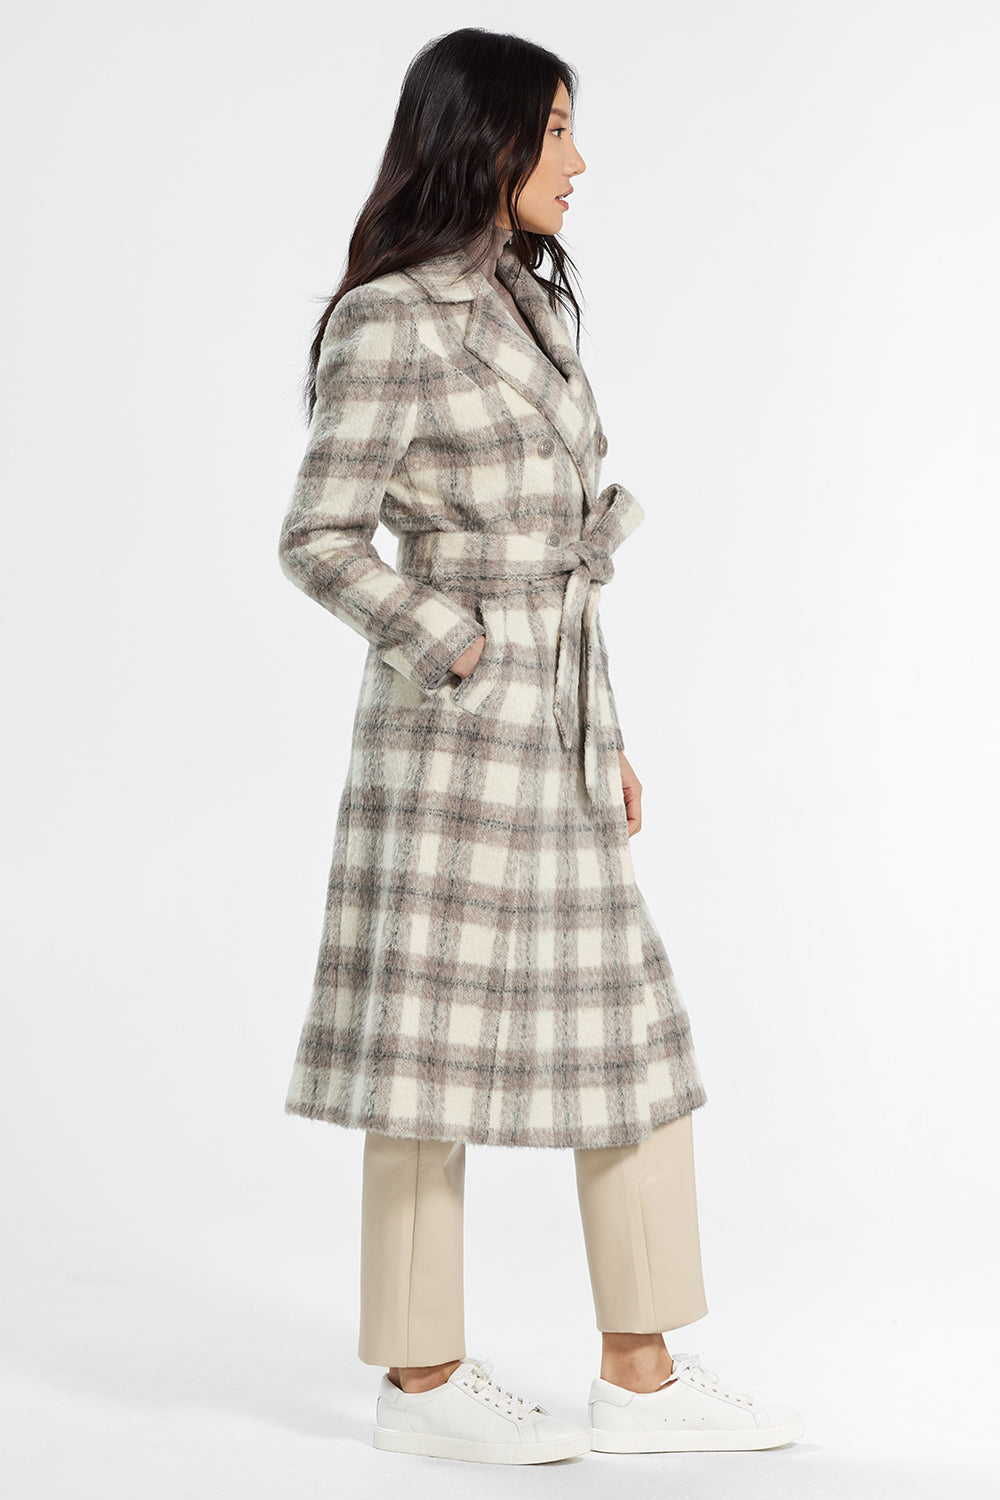 Sentaler Plaid Long Double Breasted Coat featured in Suri Alpaca and available in Ecru Plaid. Seen from side..